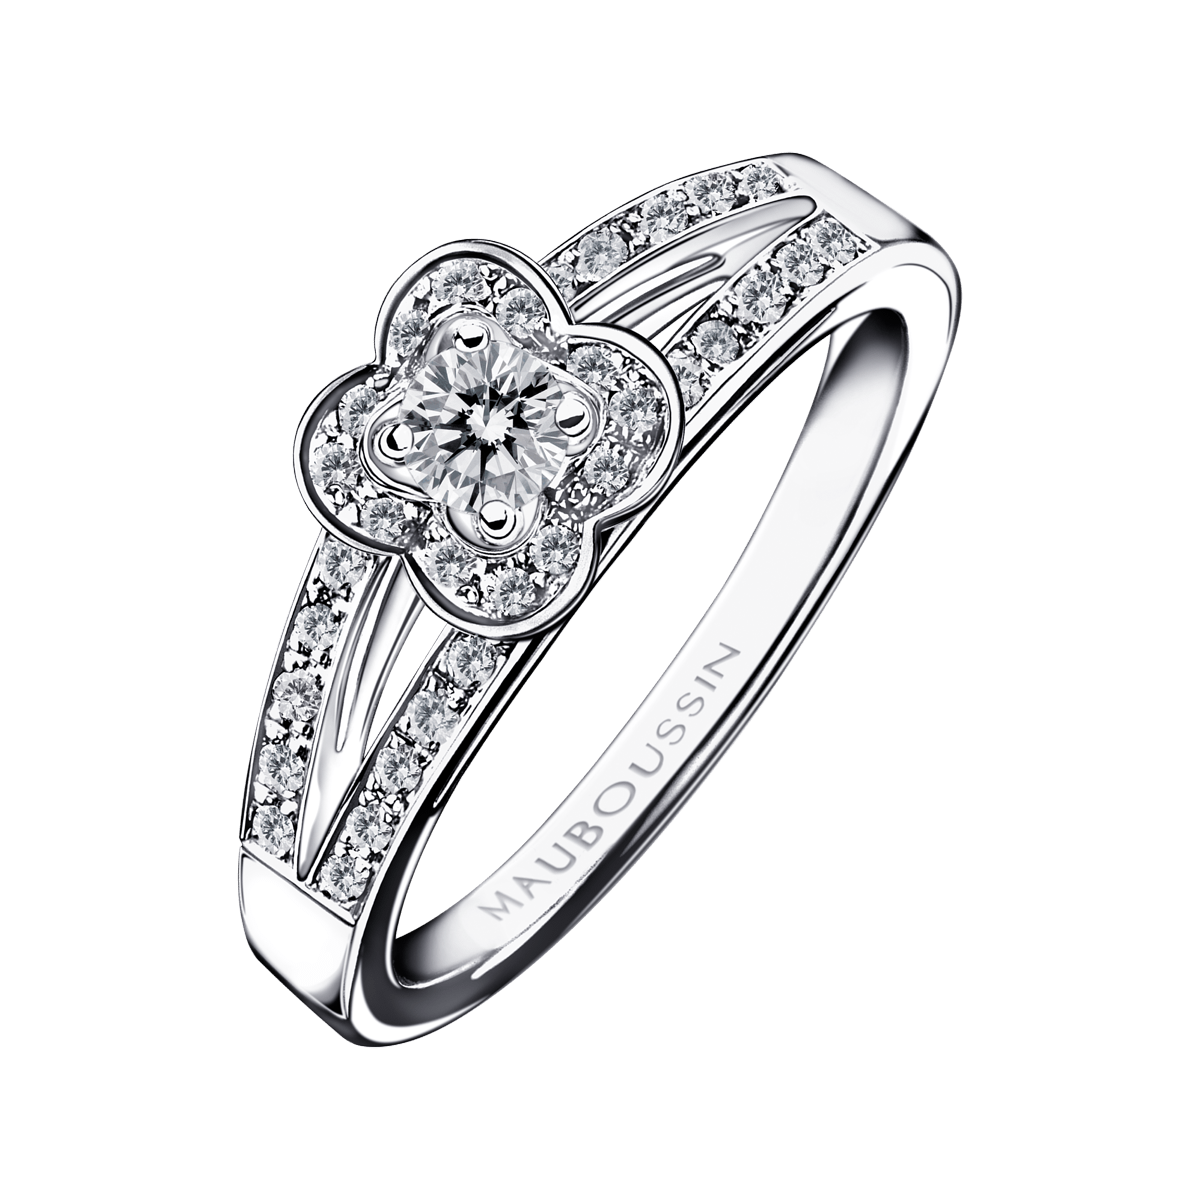 Chance of Love engagement ring